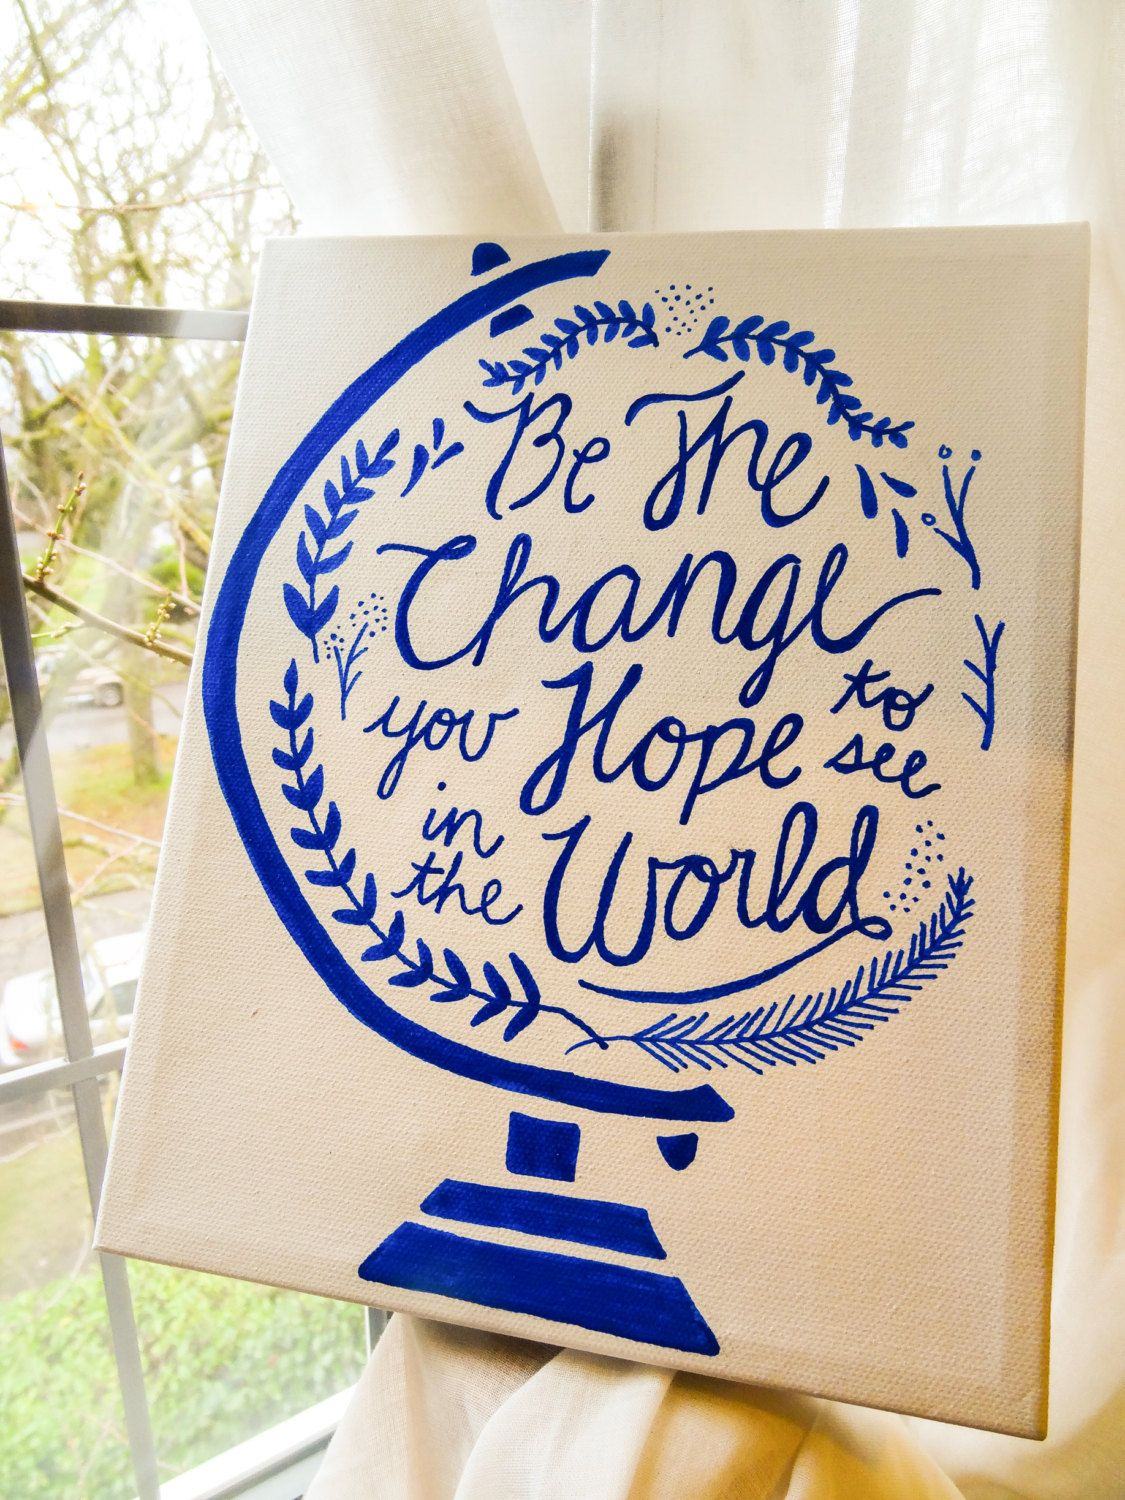 Quotes About Painting Be The Change Custom Quote Canvaslittletruths On Etsy Https